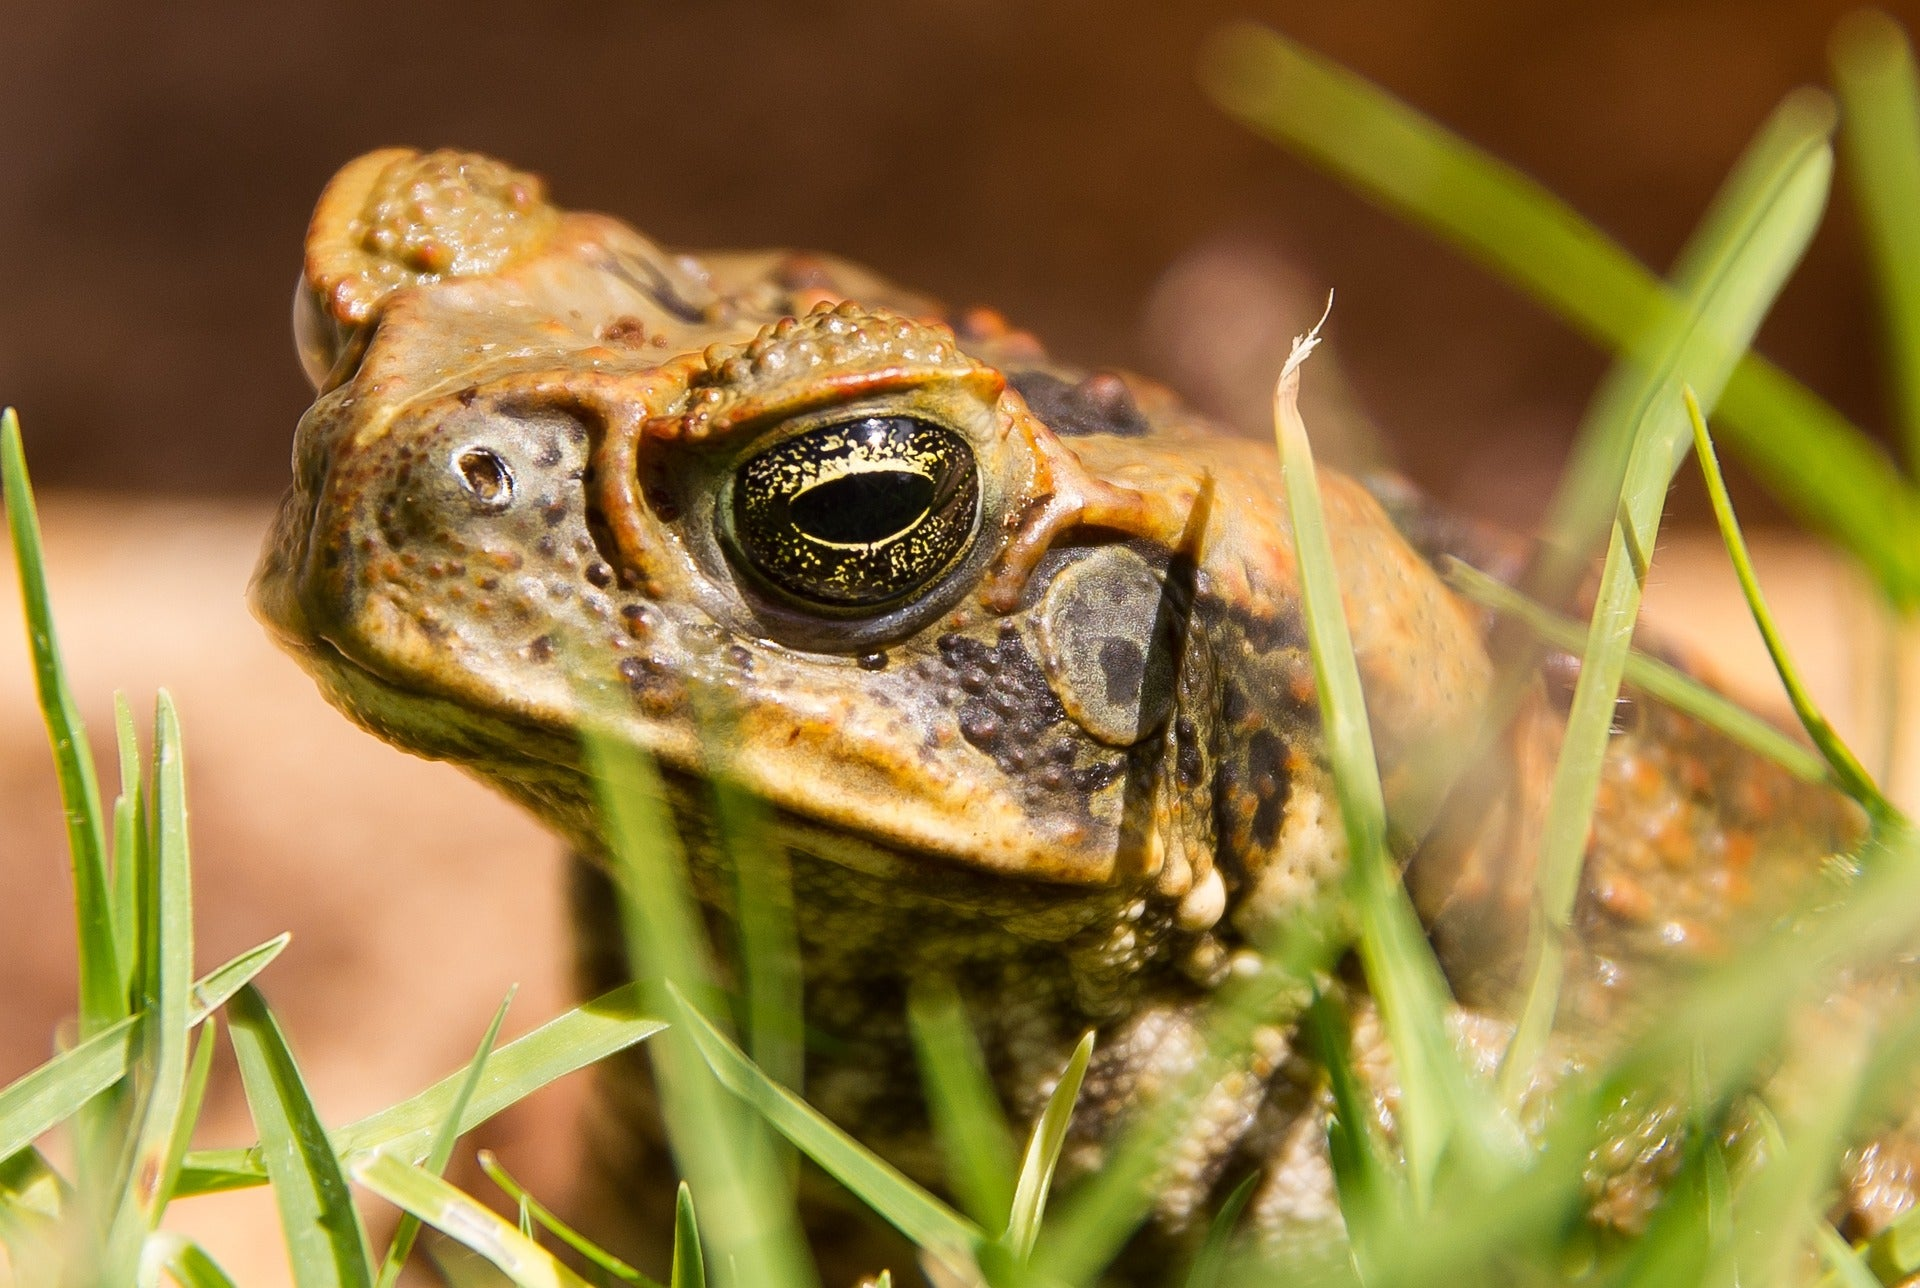 Close-up of a cane toad sitting in grass